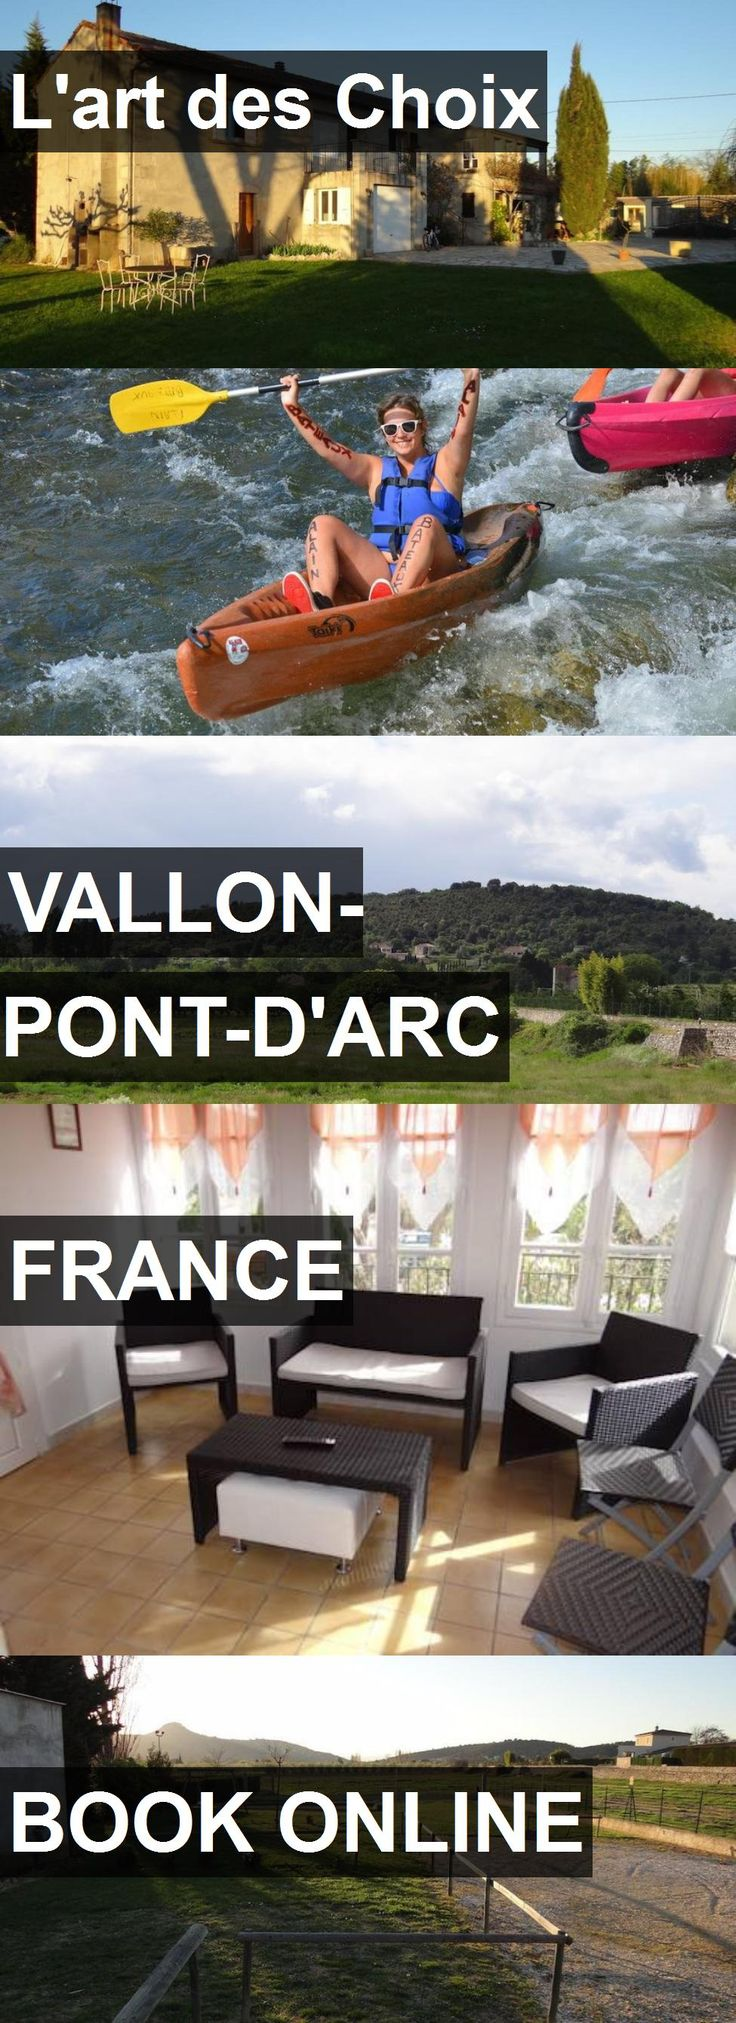 Hotel L'art des Choix in Vallon-Pont-d'Arc, France. For more information, photos, reviews and best prices please follow the link. #France #Vallon-Pont-d'Arc #travel #vacation #hotel